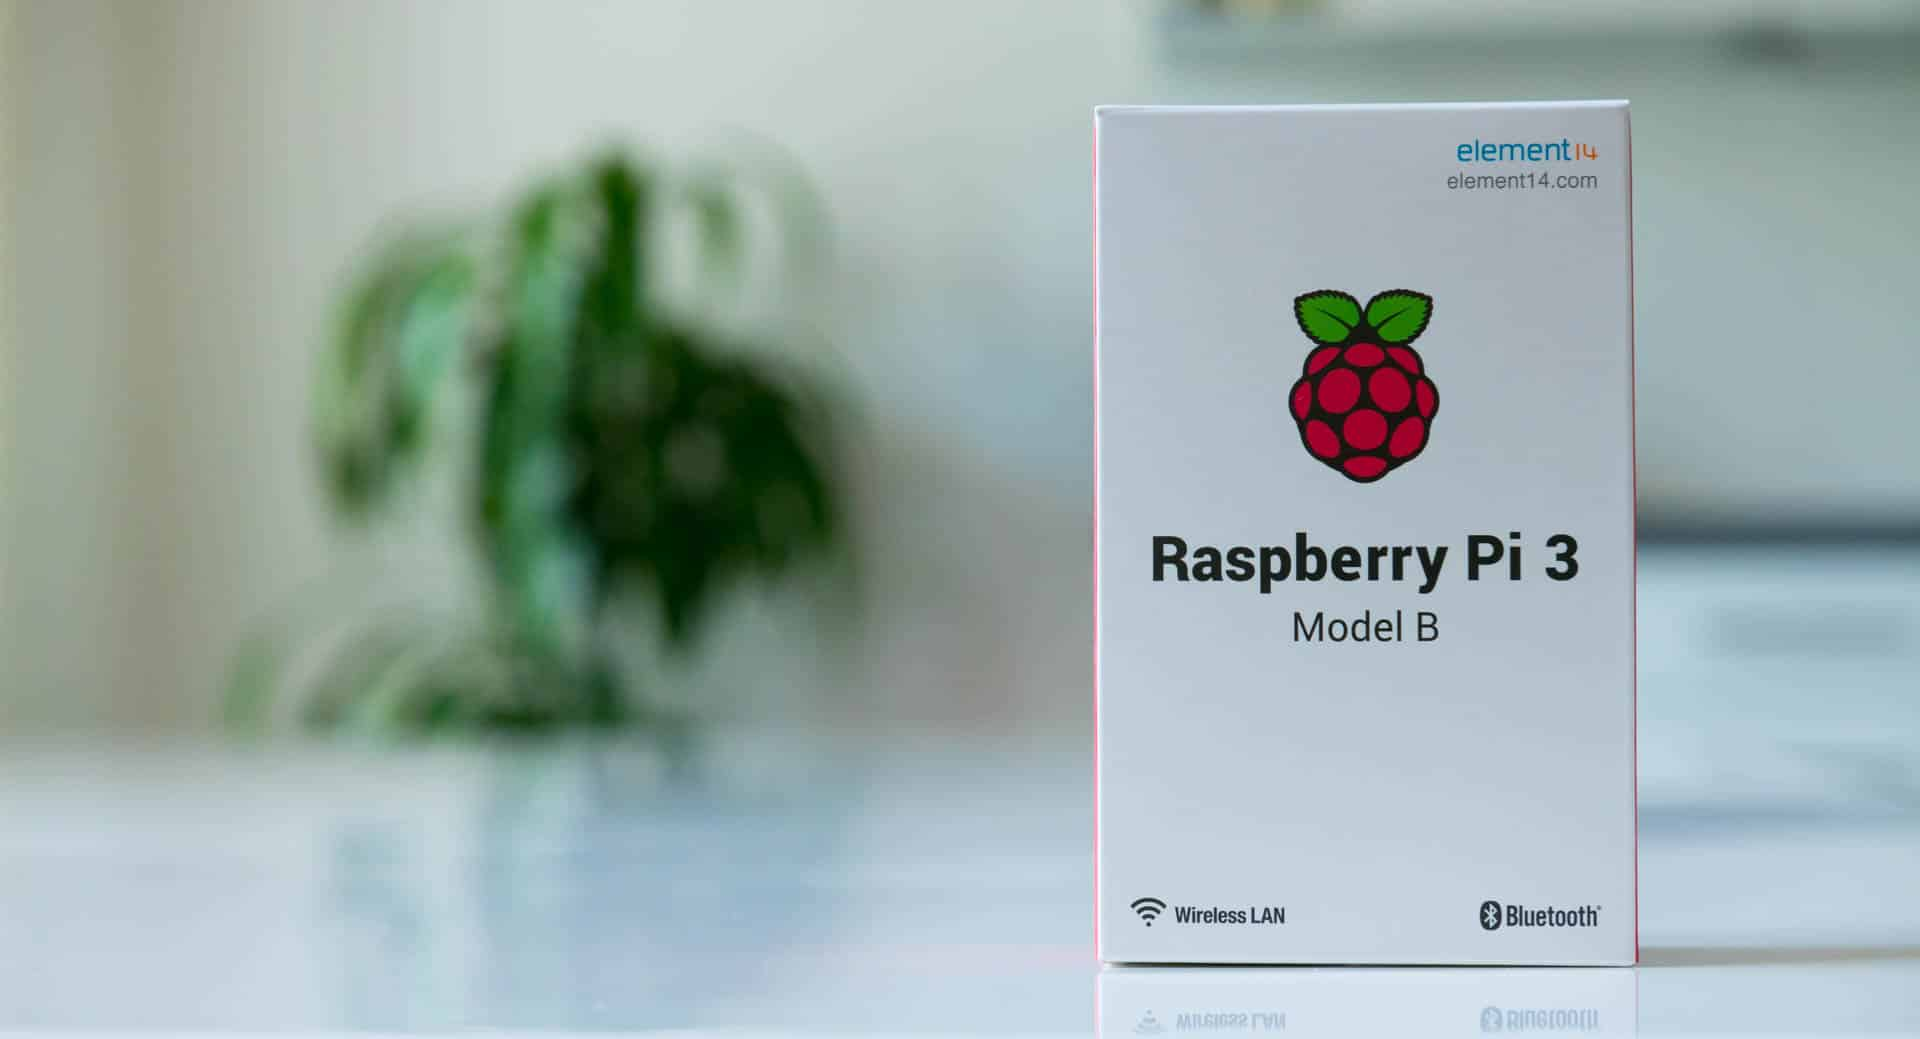 Raspberry-Pi-Verpackung